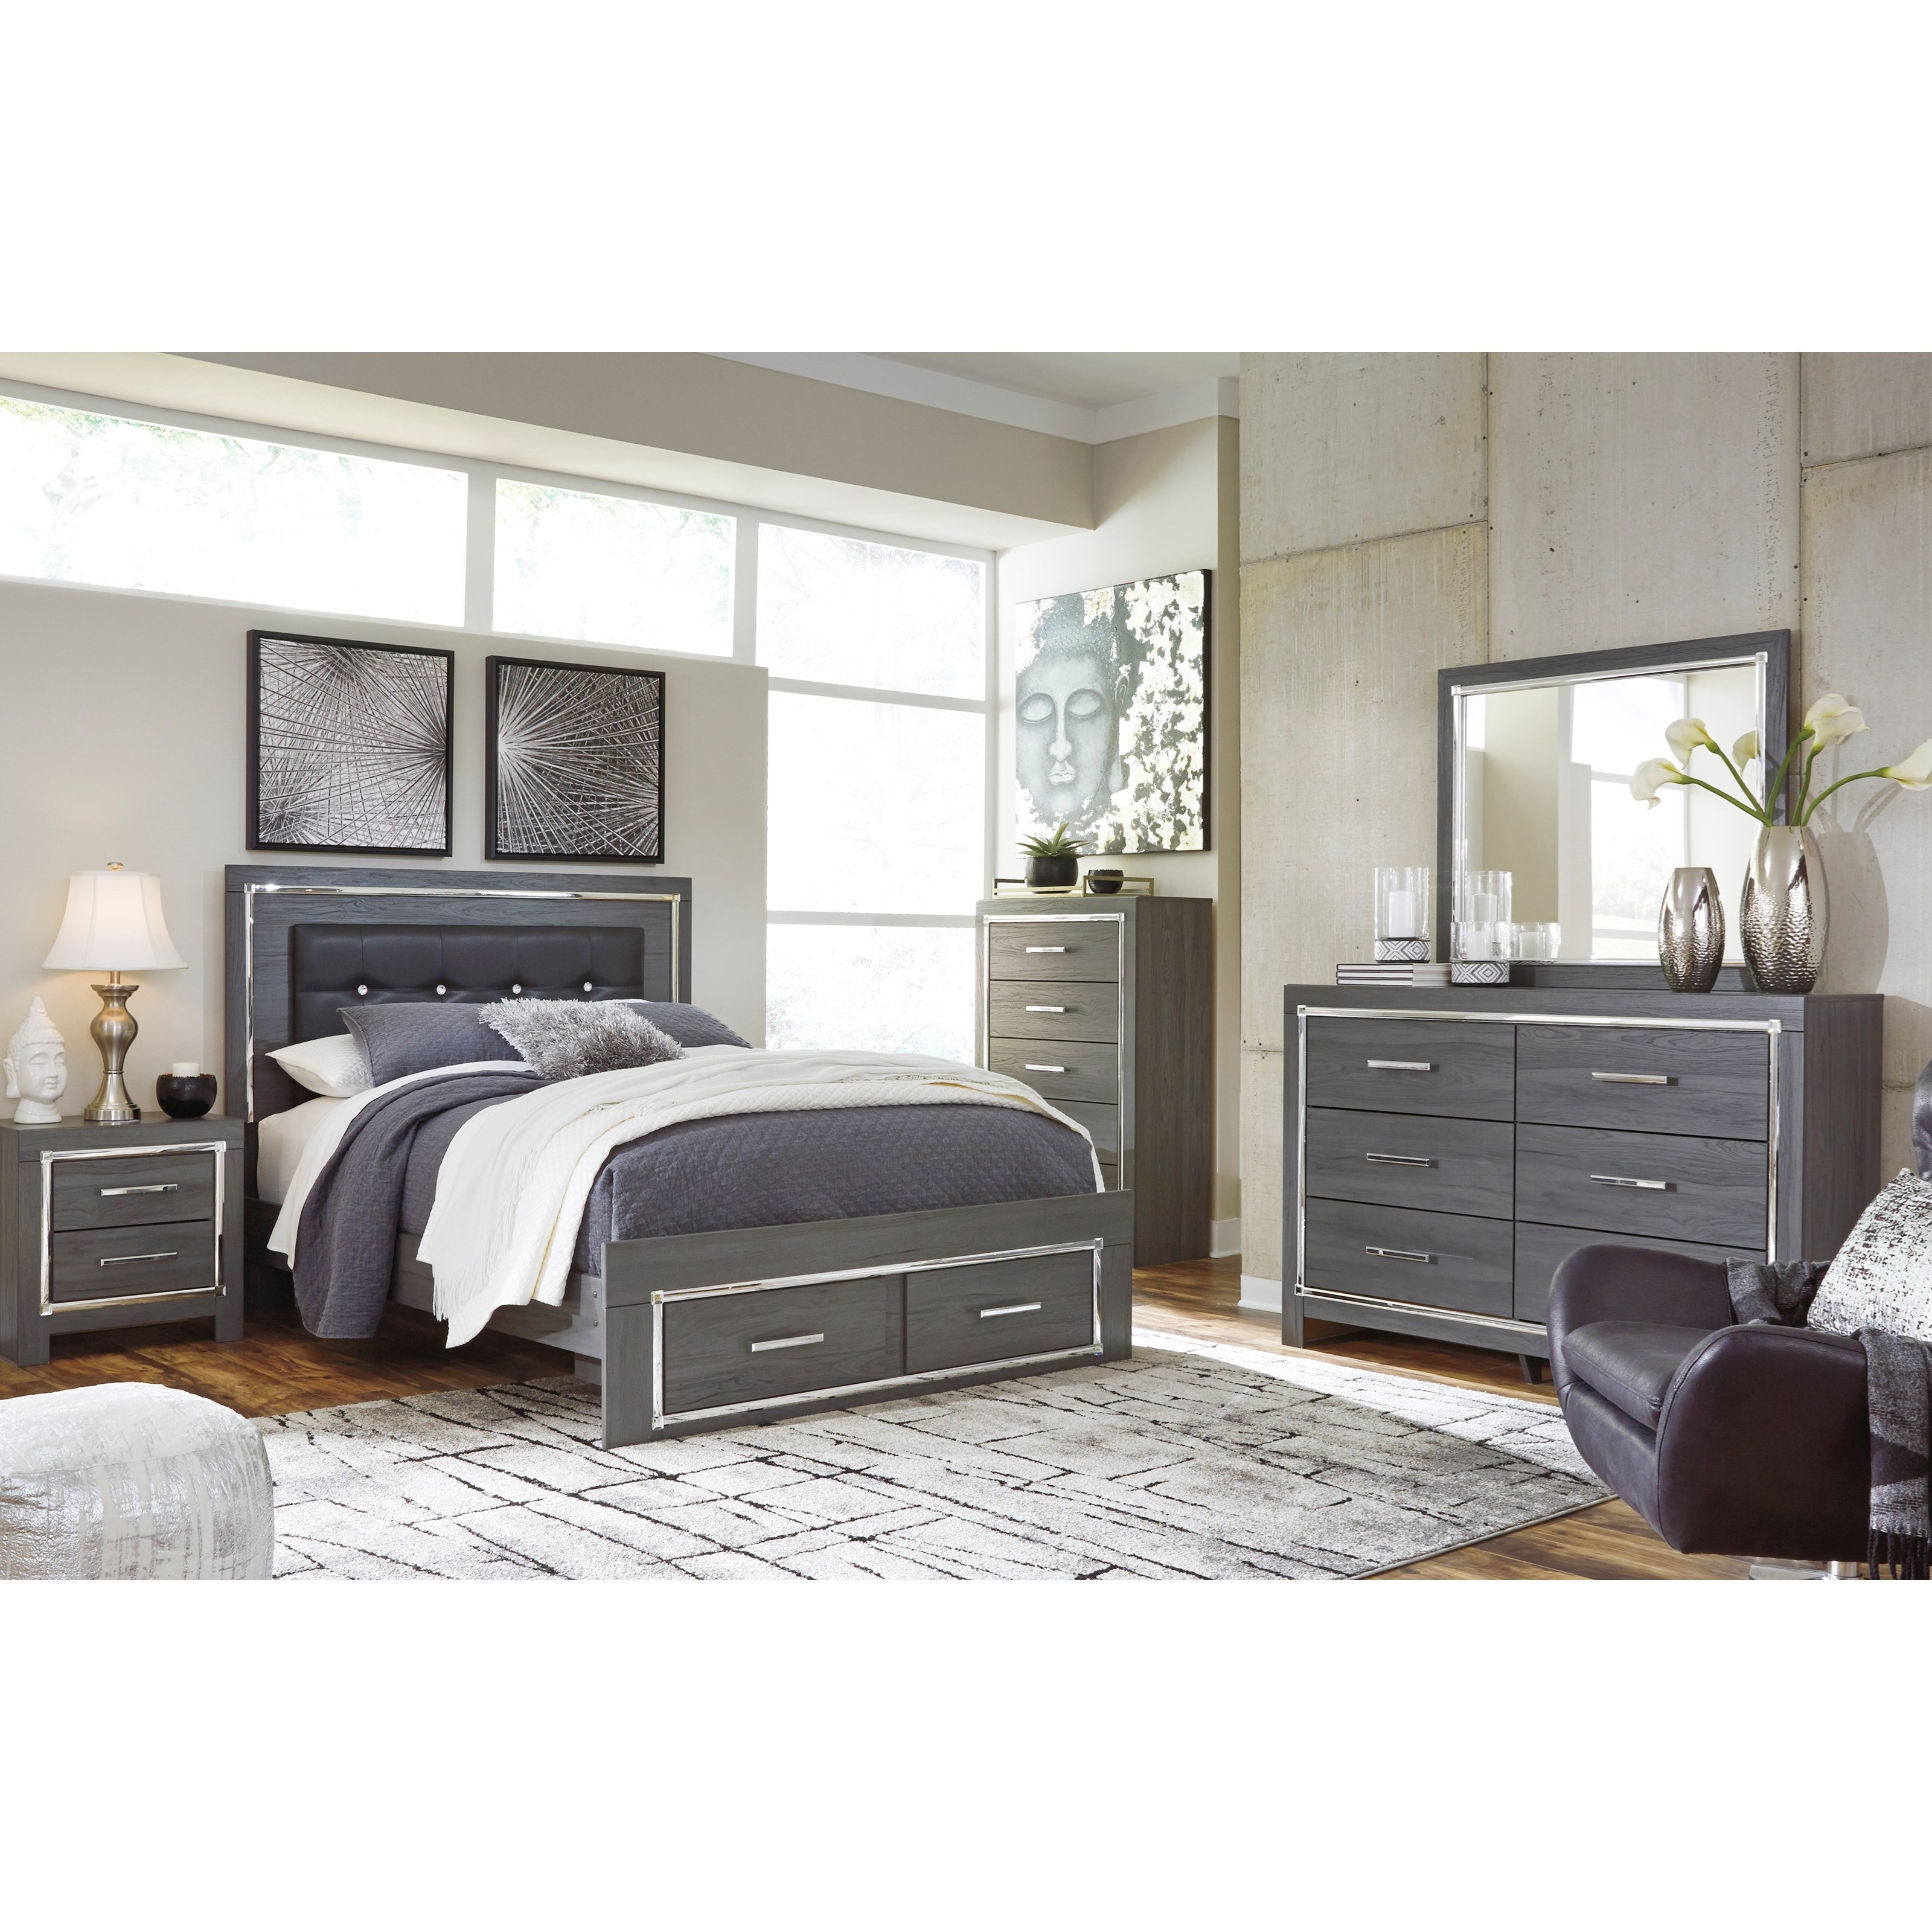 Lodana King Bedroom Group by Signature Design by Ashley at Sparks HomeStore